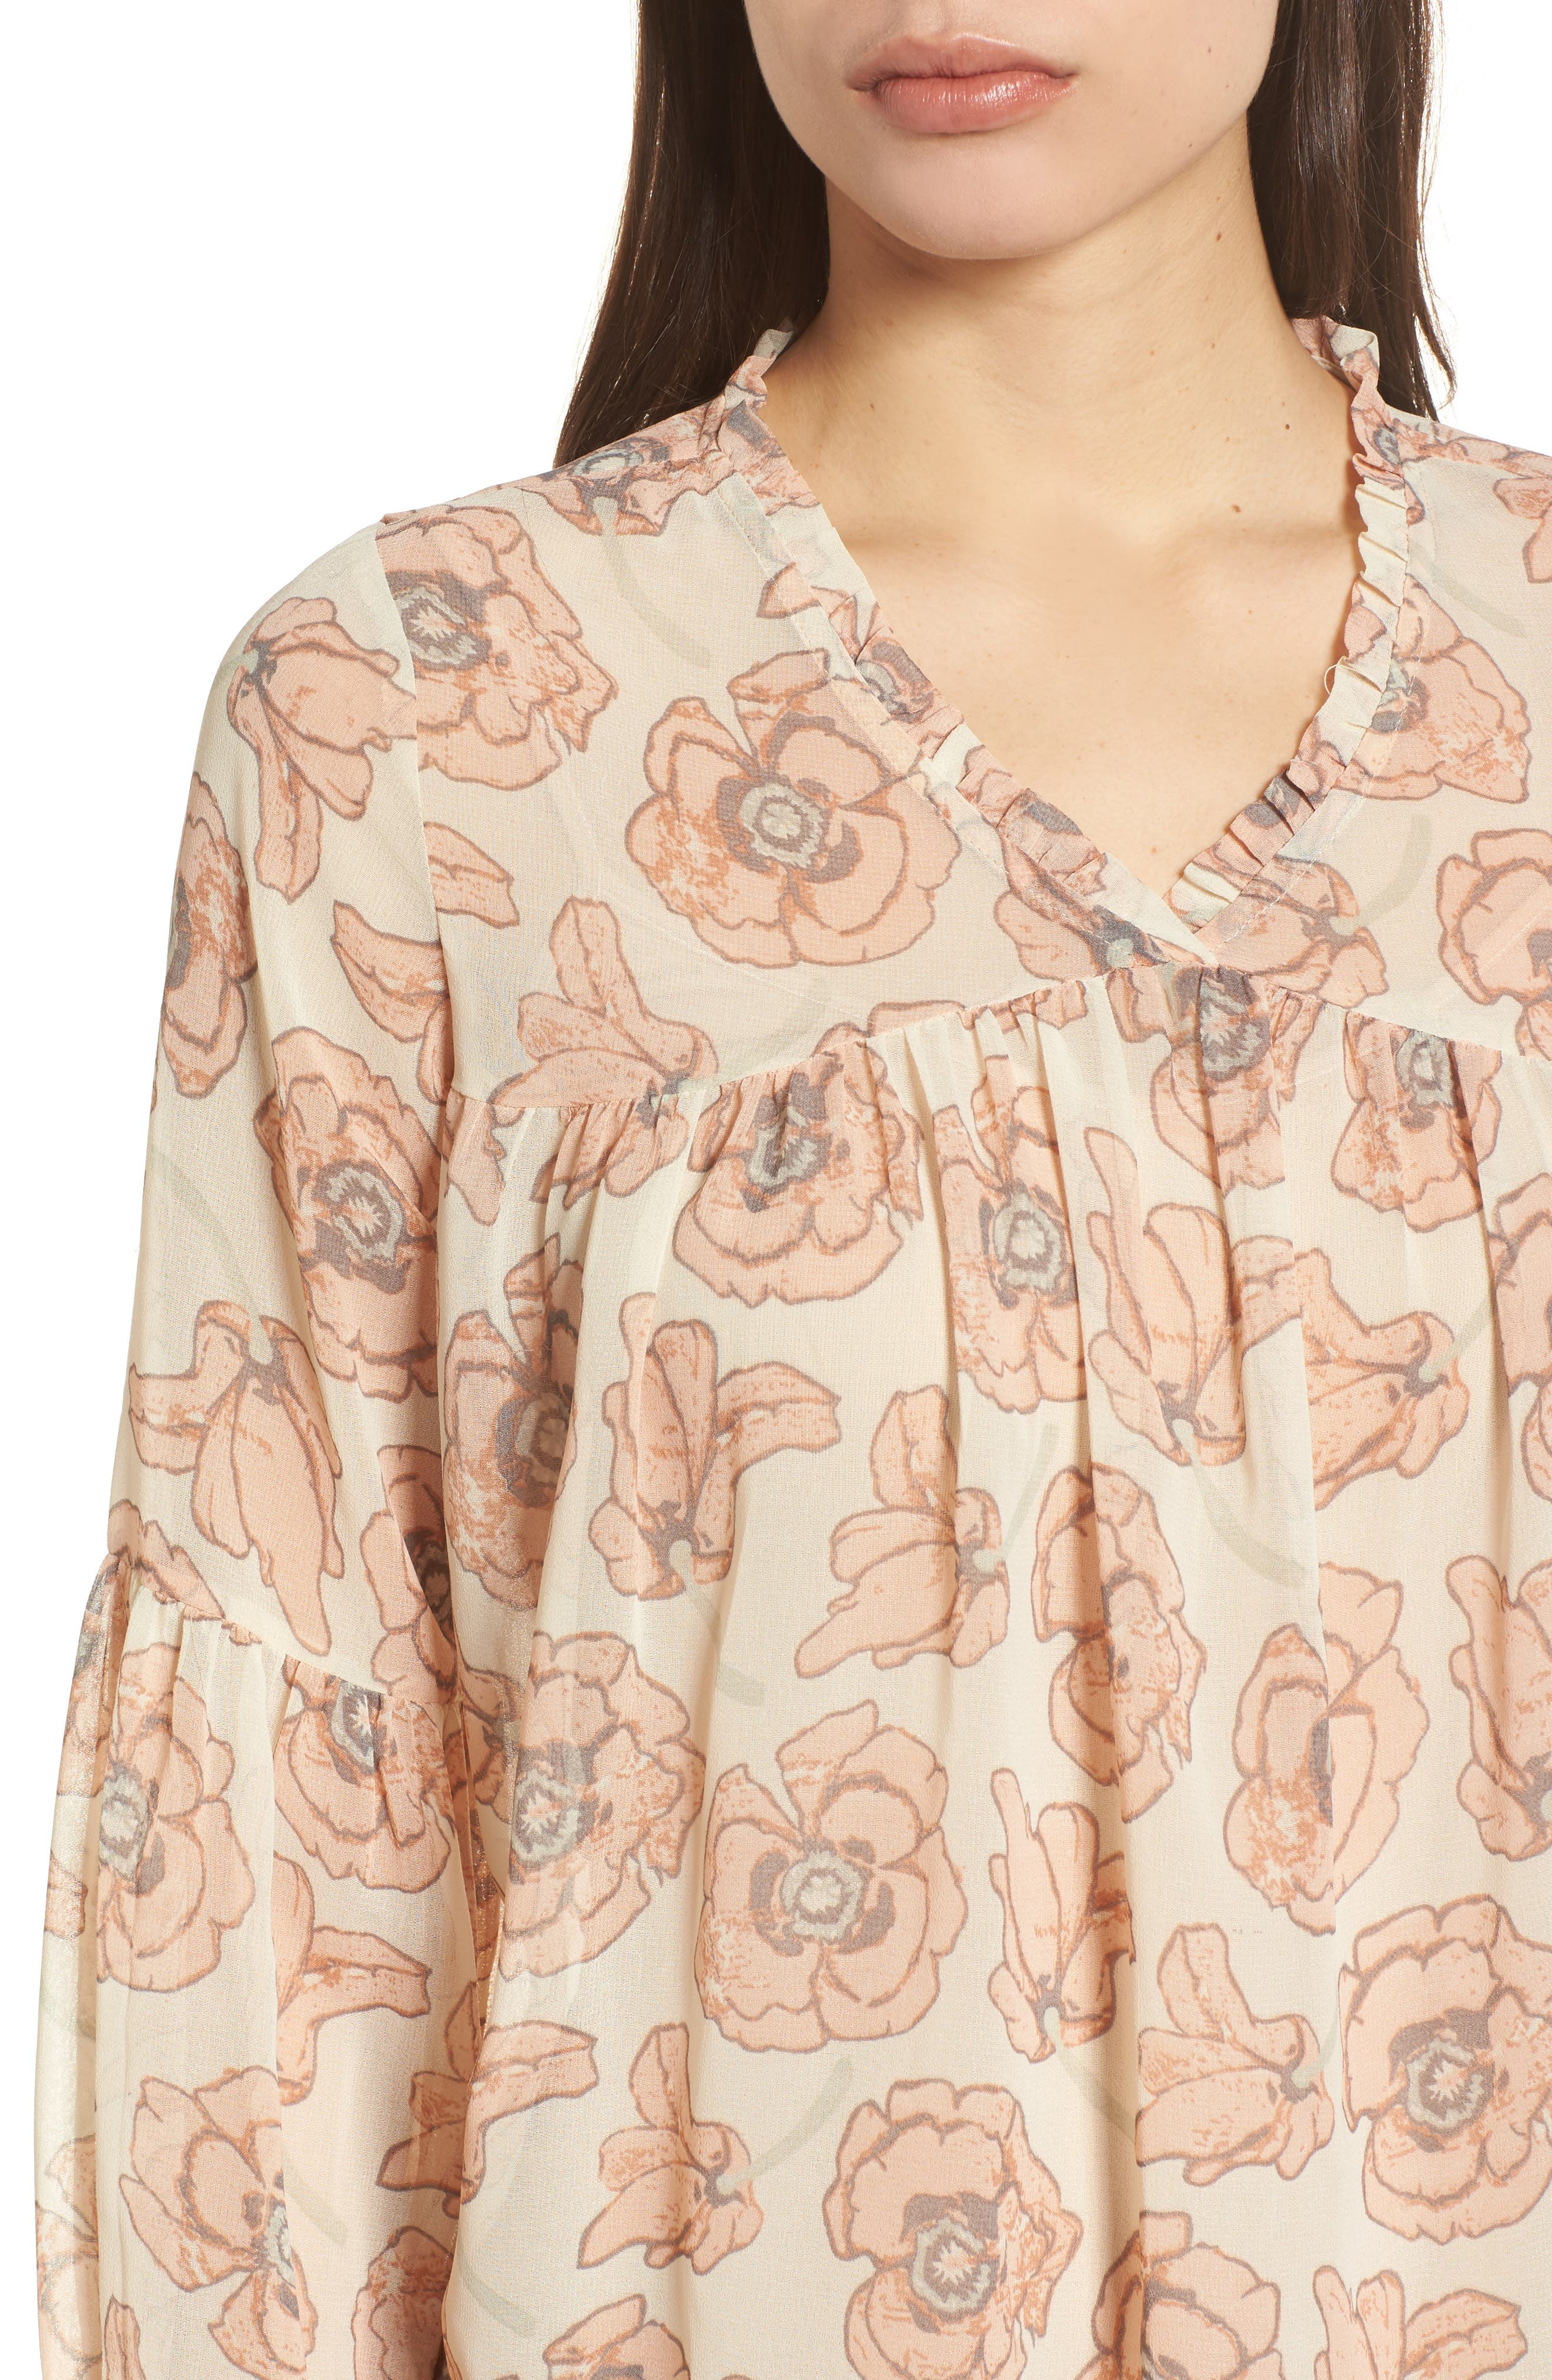 Exploded Floral Top,                             Alternate thumbnail 4, color,                             690